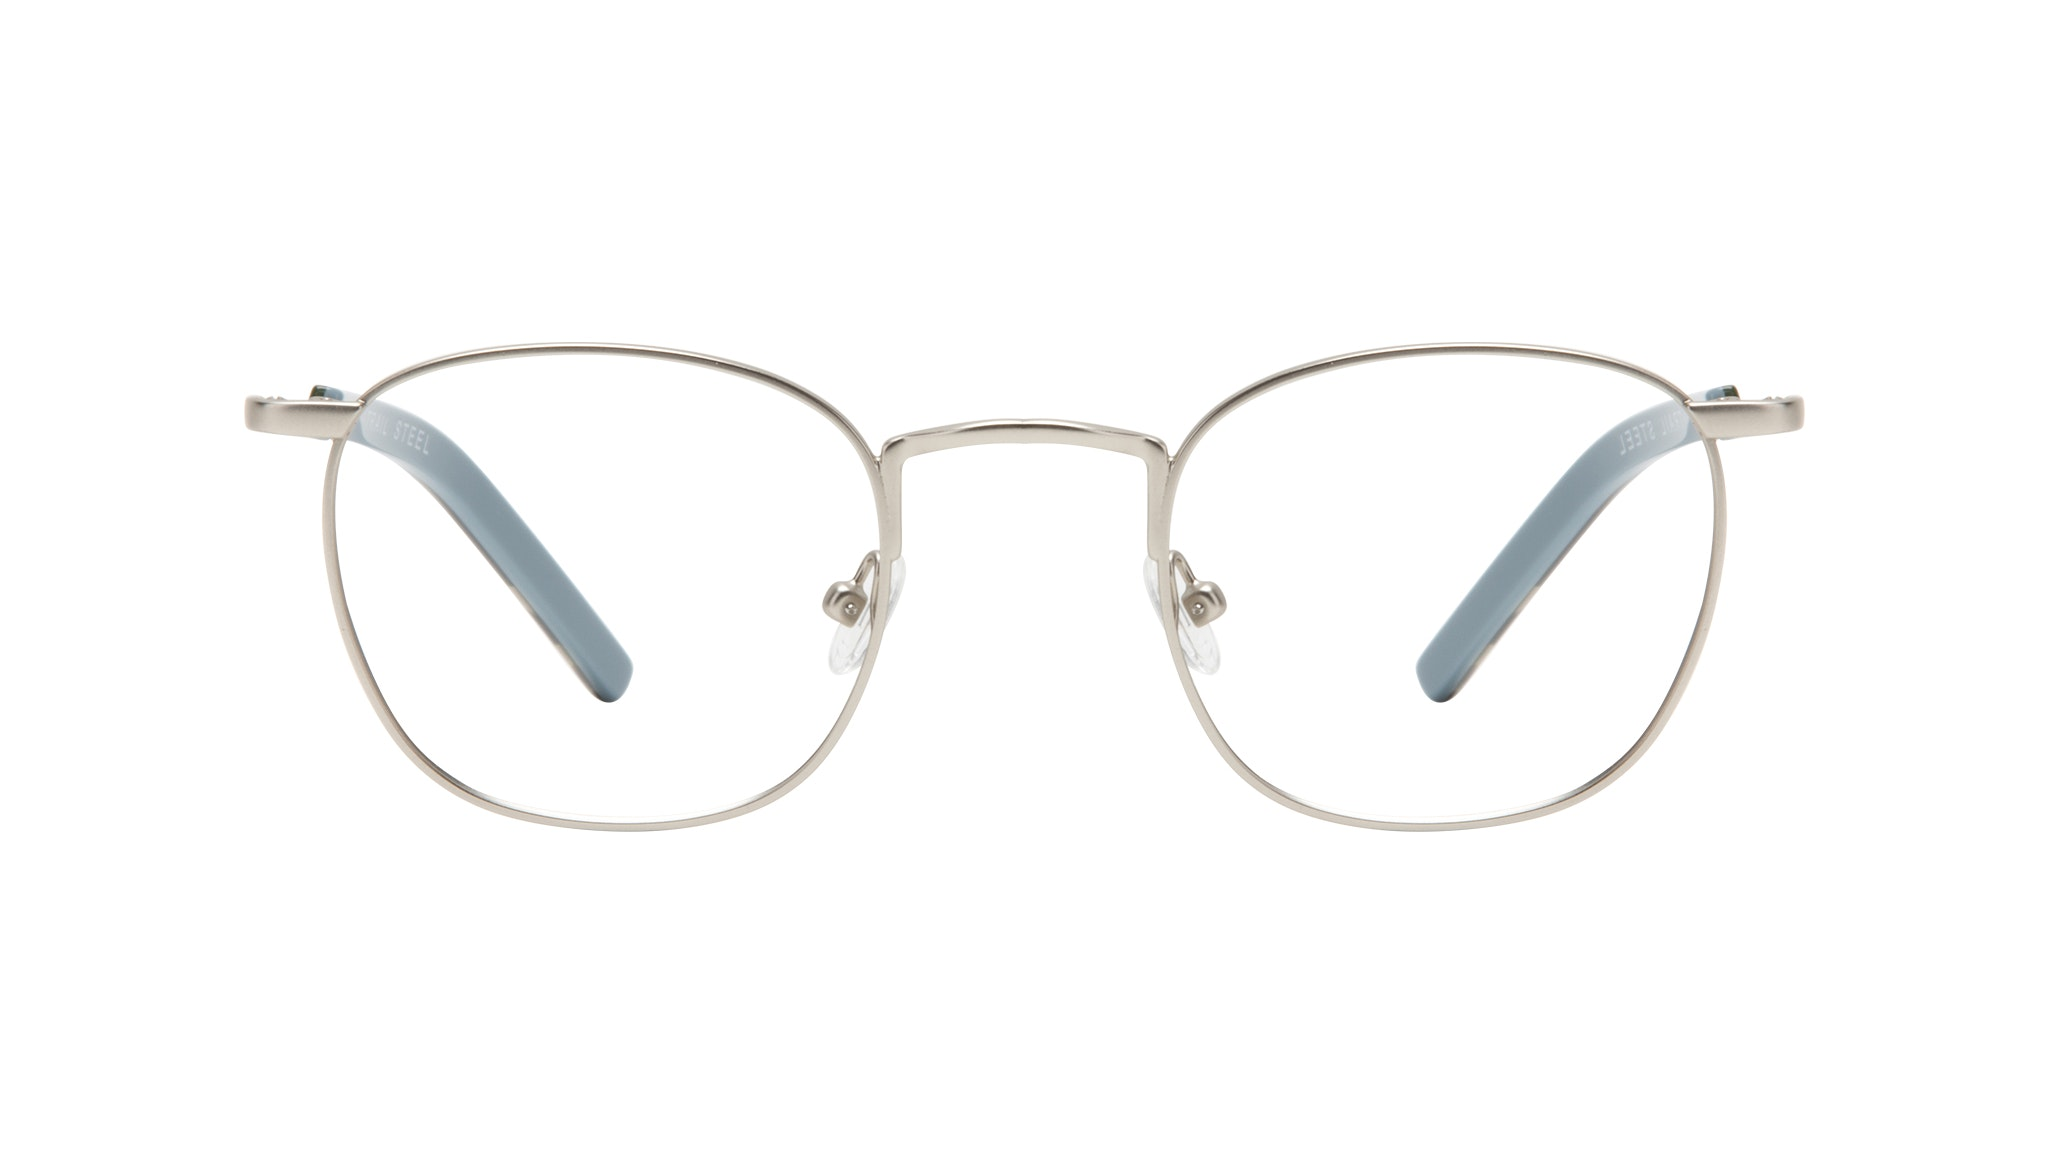 Affordable Fashion Glasses Round Eyeglasses Men Trail Steel